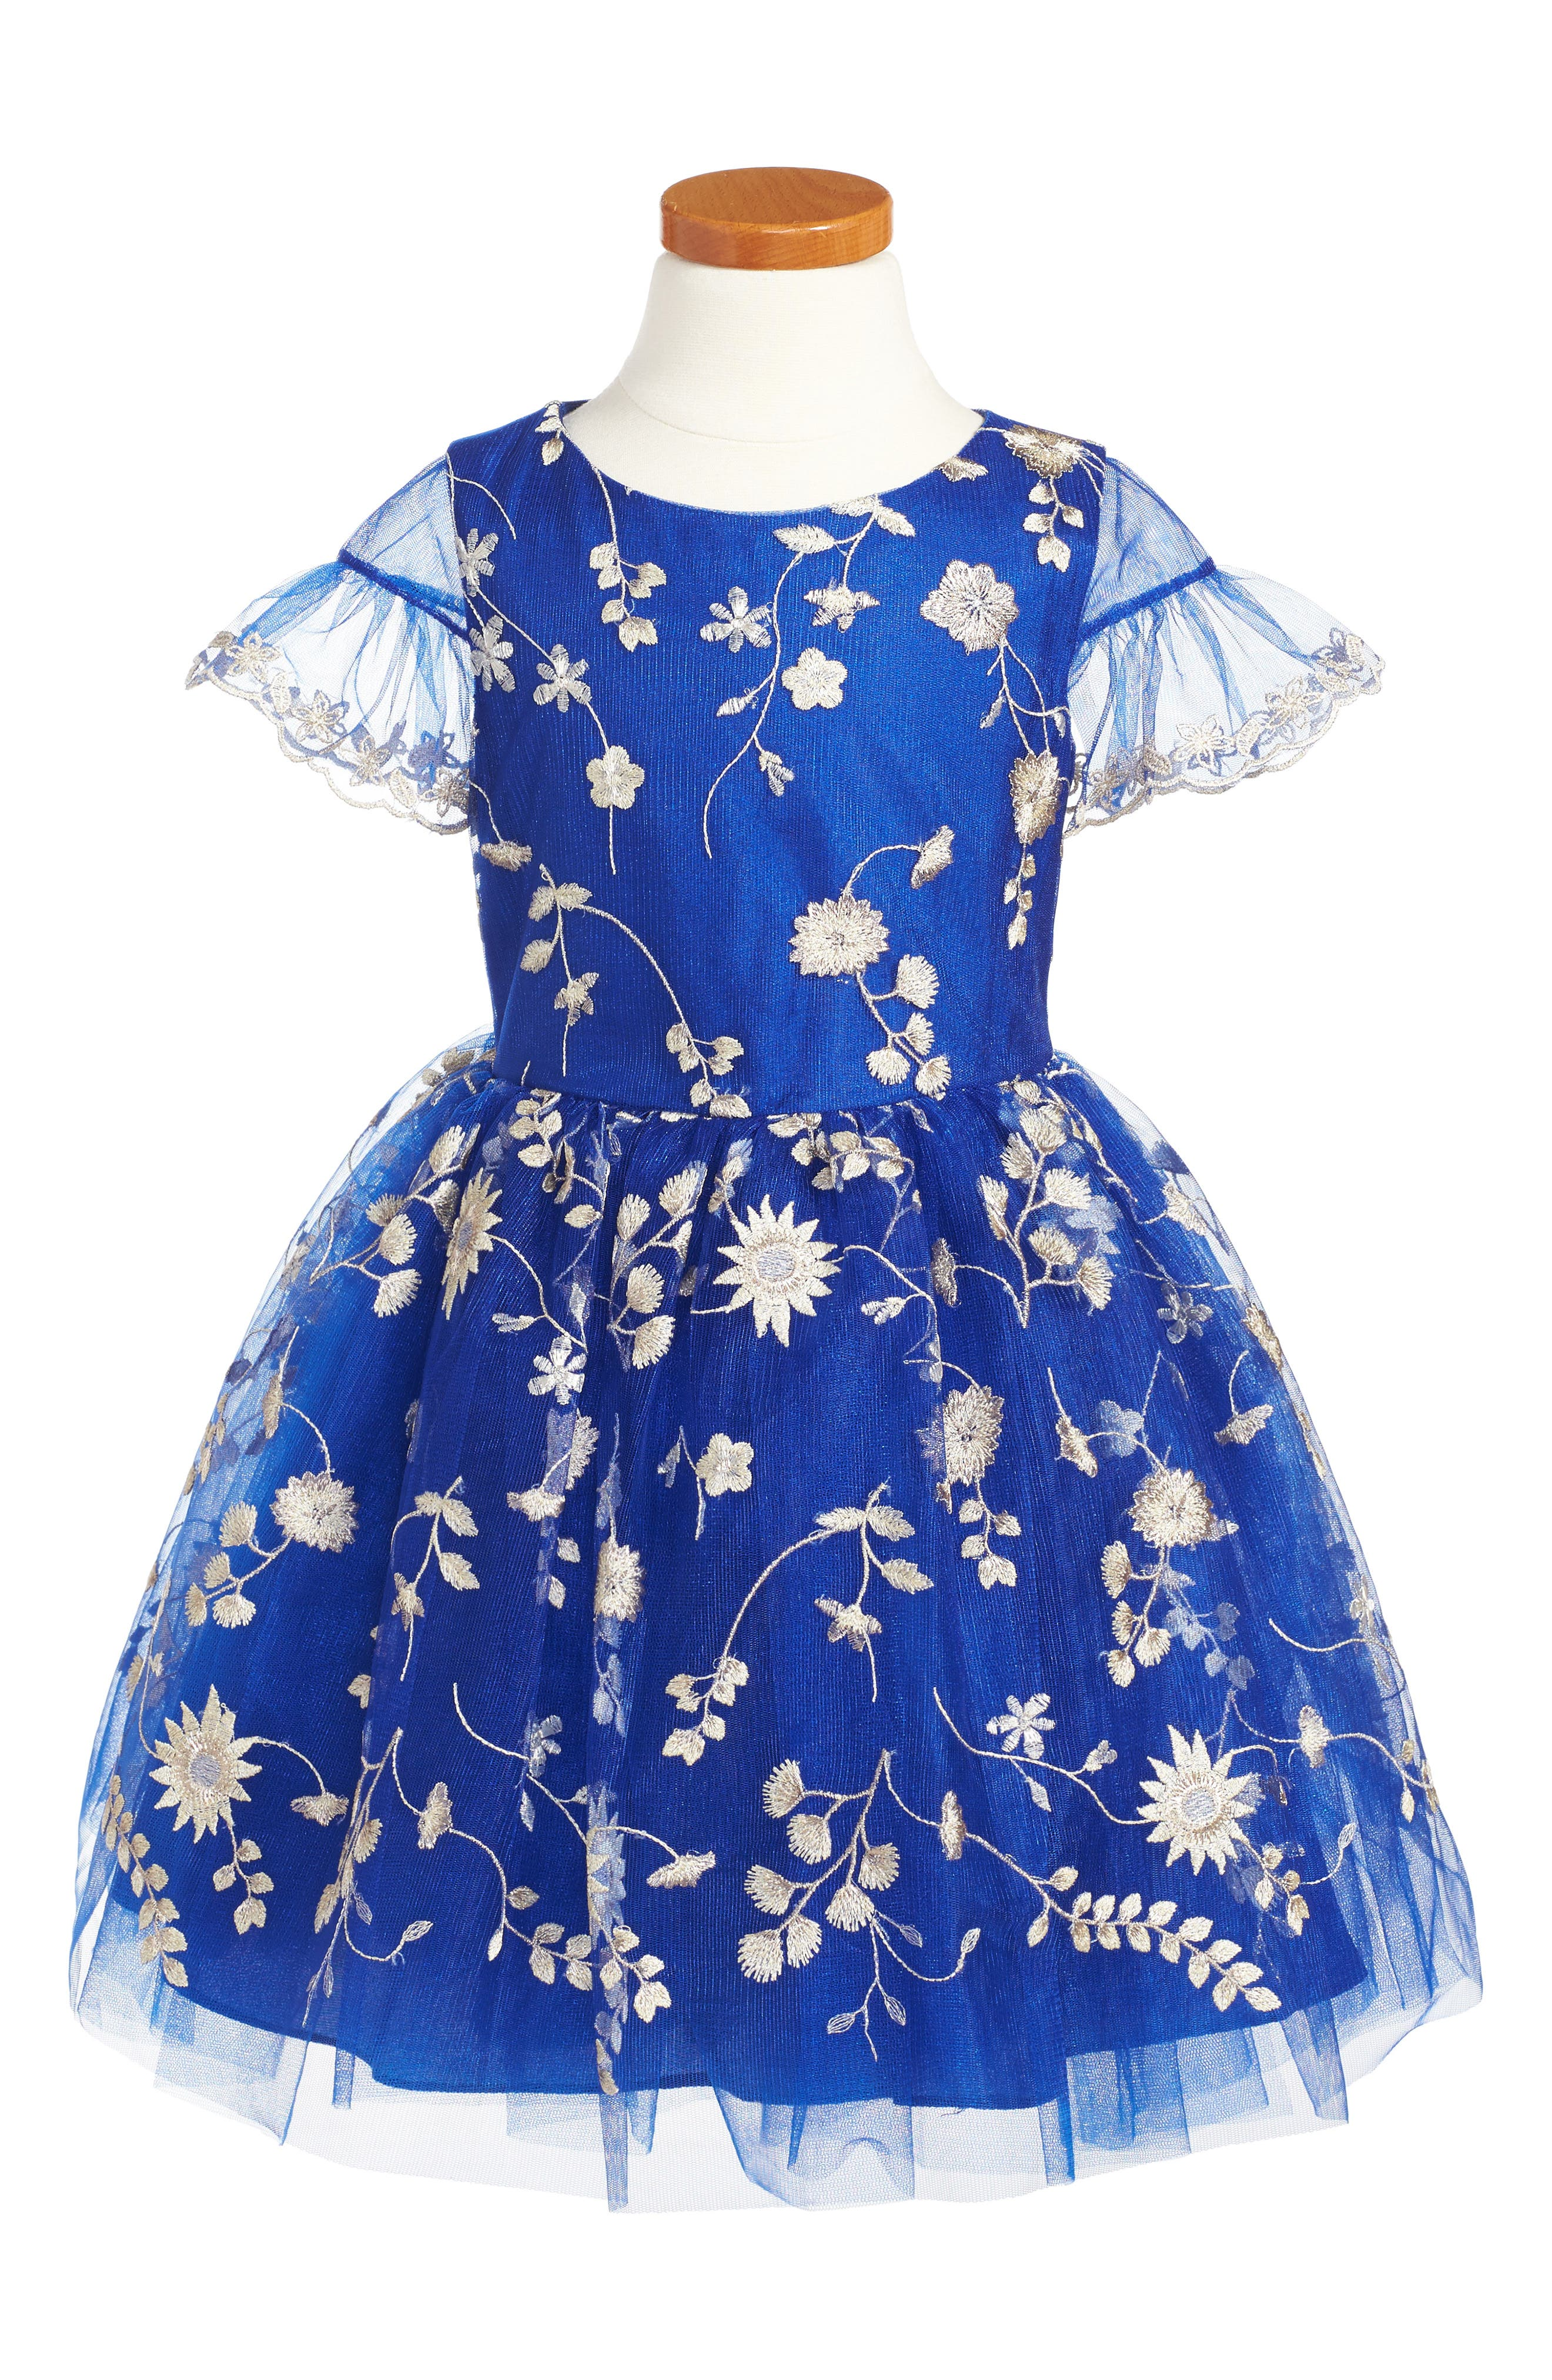 Floral Embroidery Dress,                             Main thumbnail 1, color,                             430